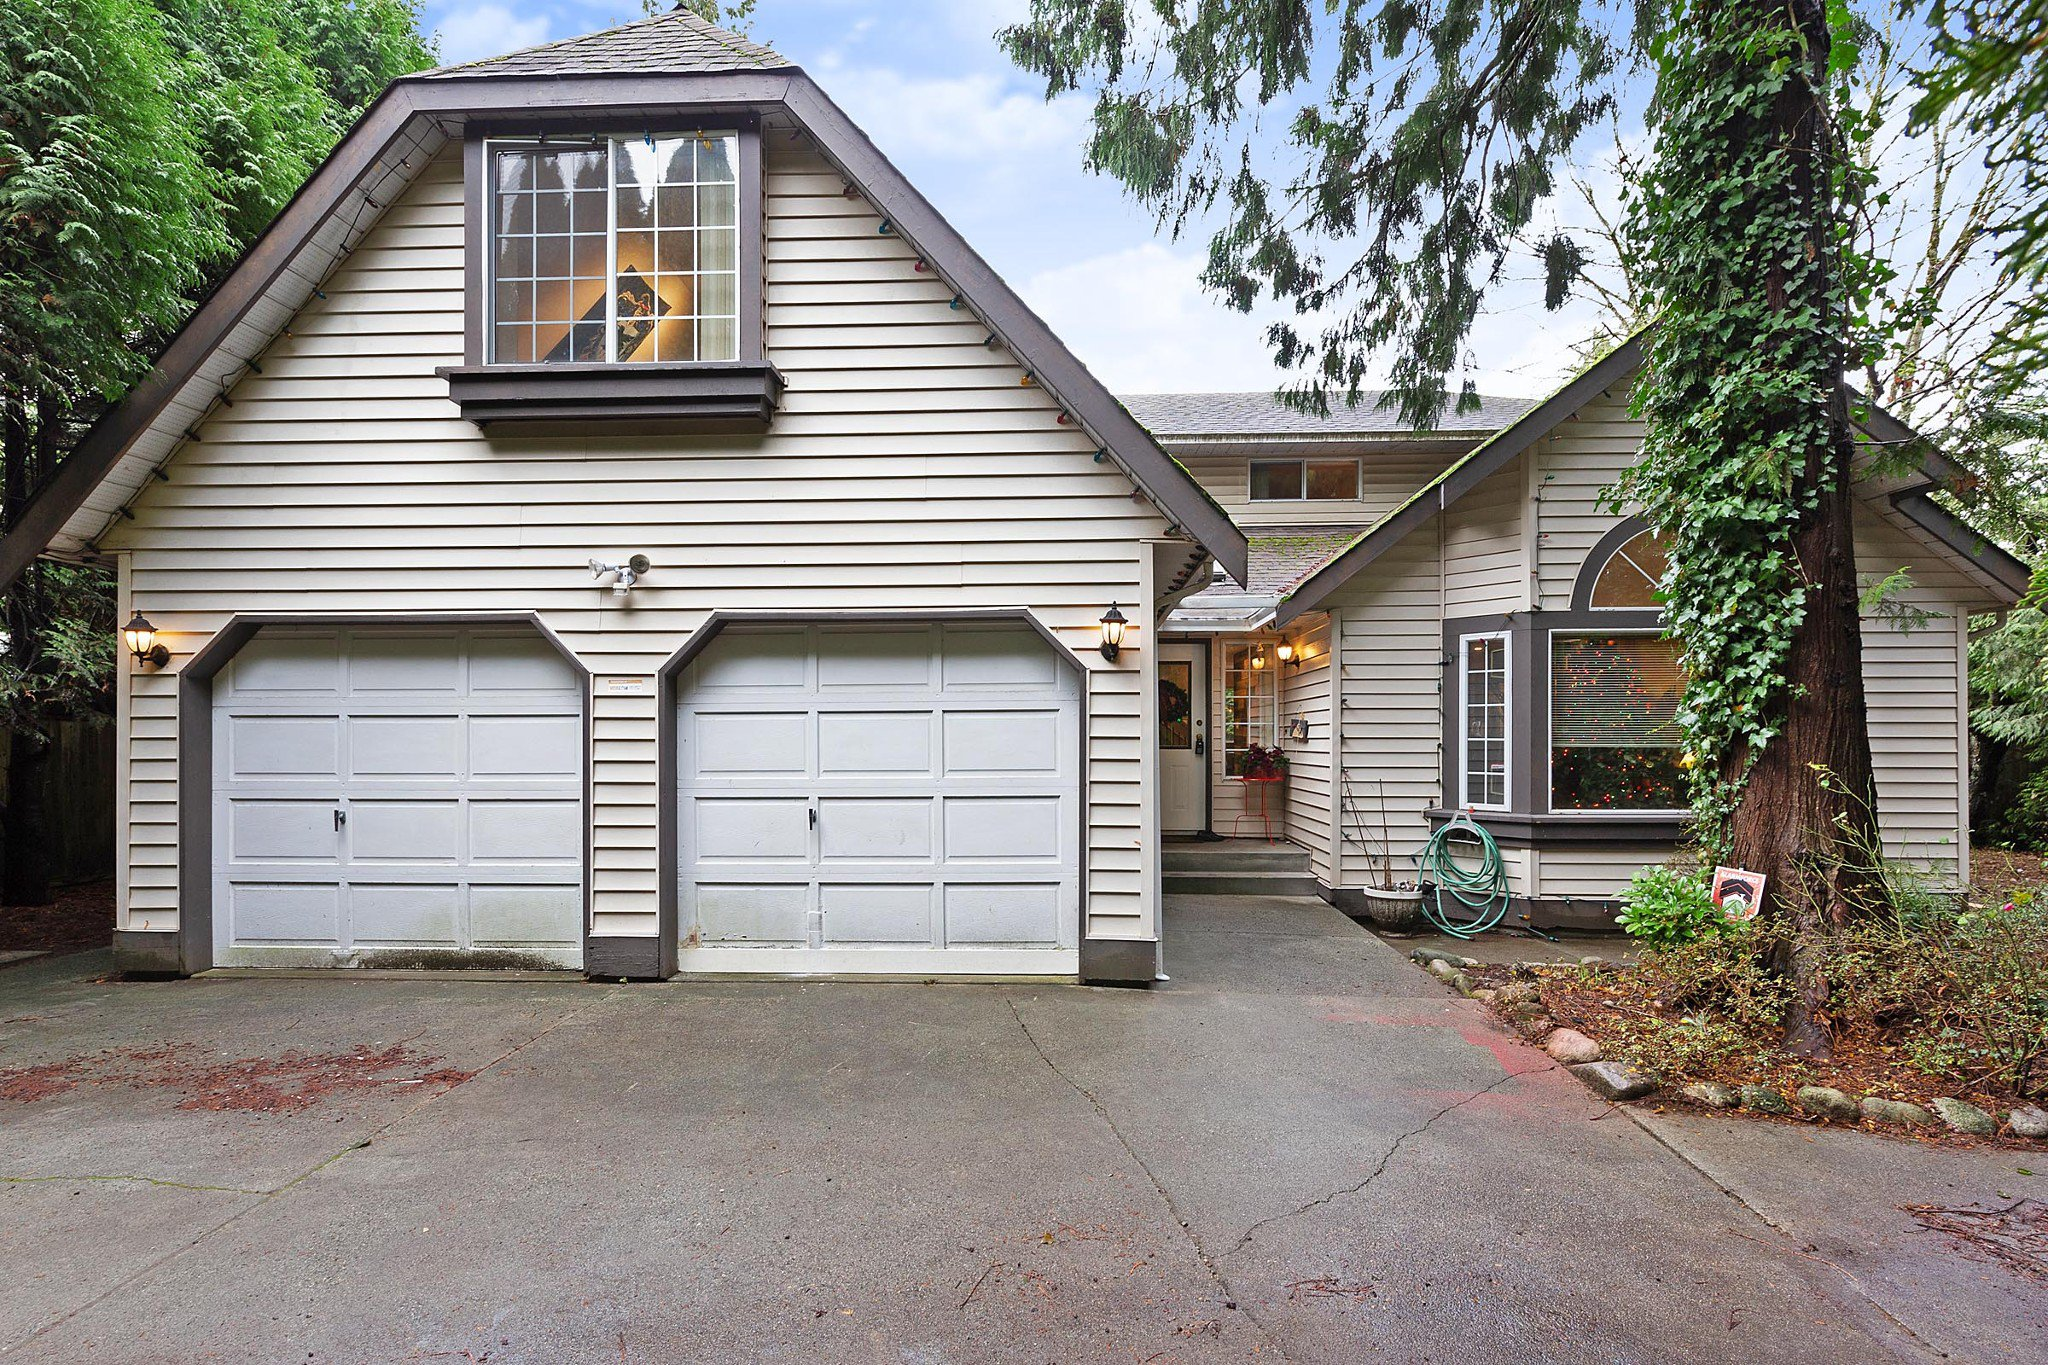 Main Photo: 19437 119 Avenue in Pitt Meadows: Central Meadows House for sale : MLS®# R2424665